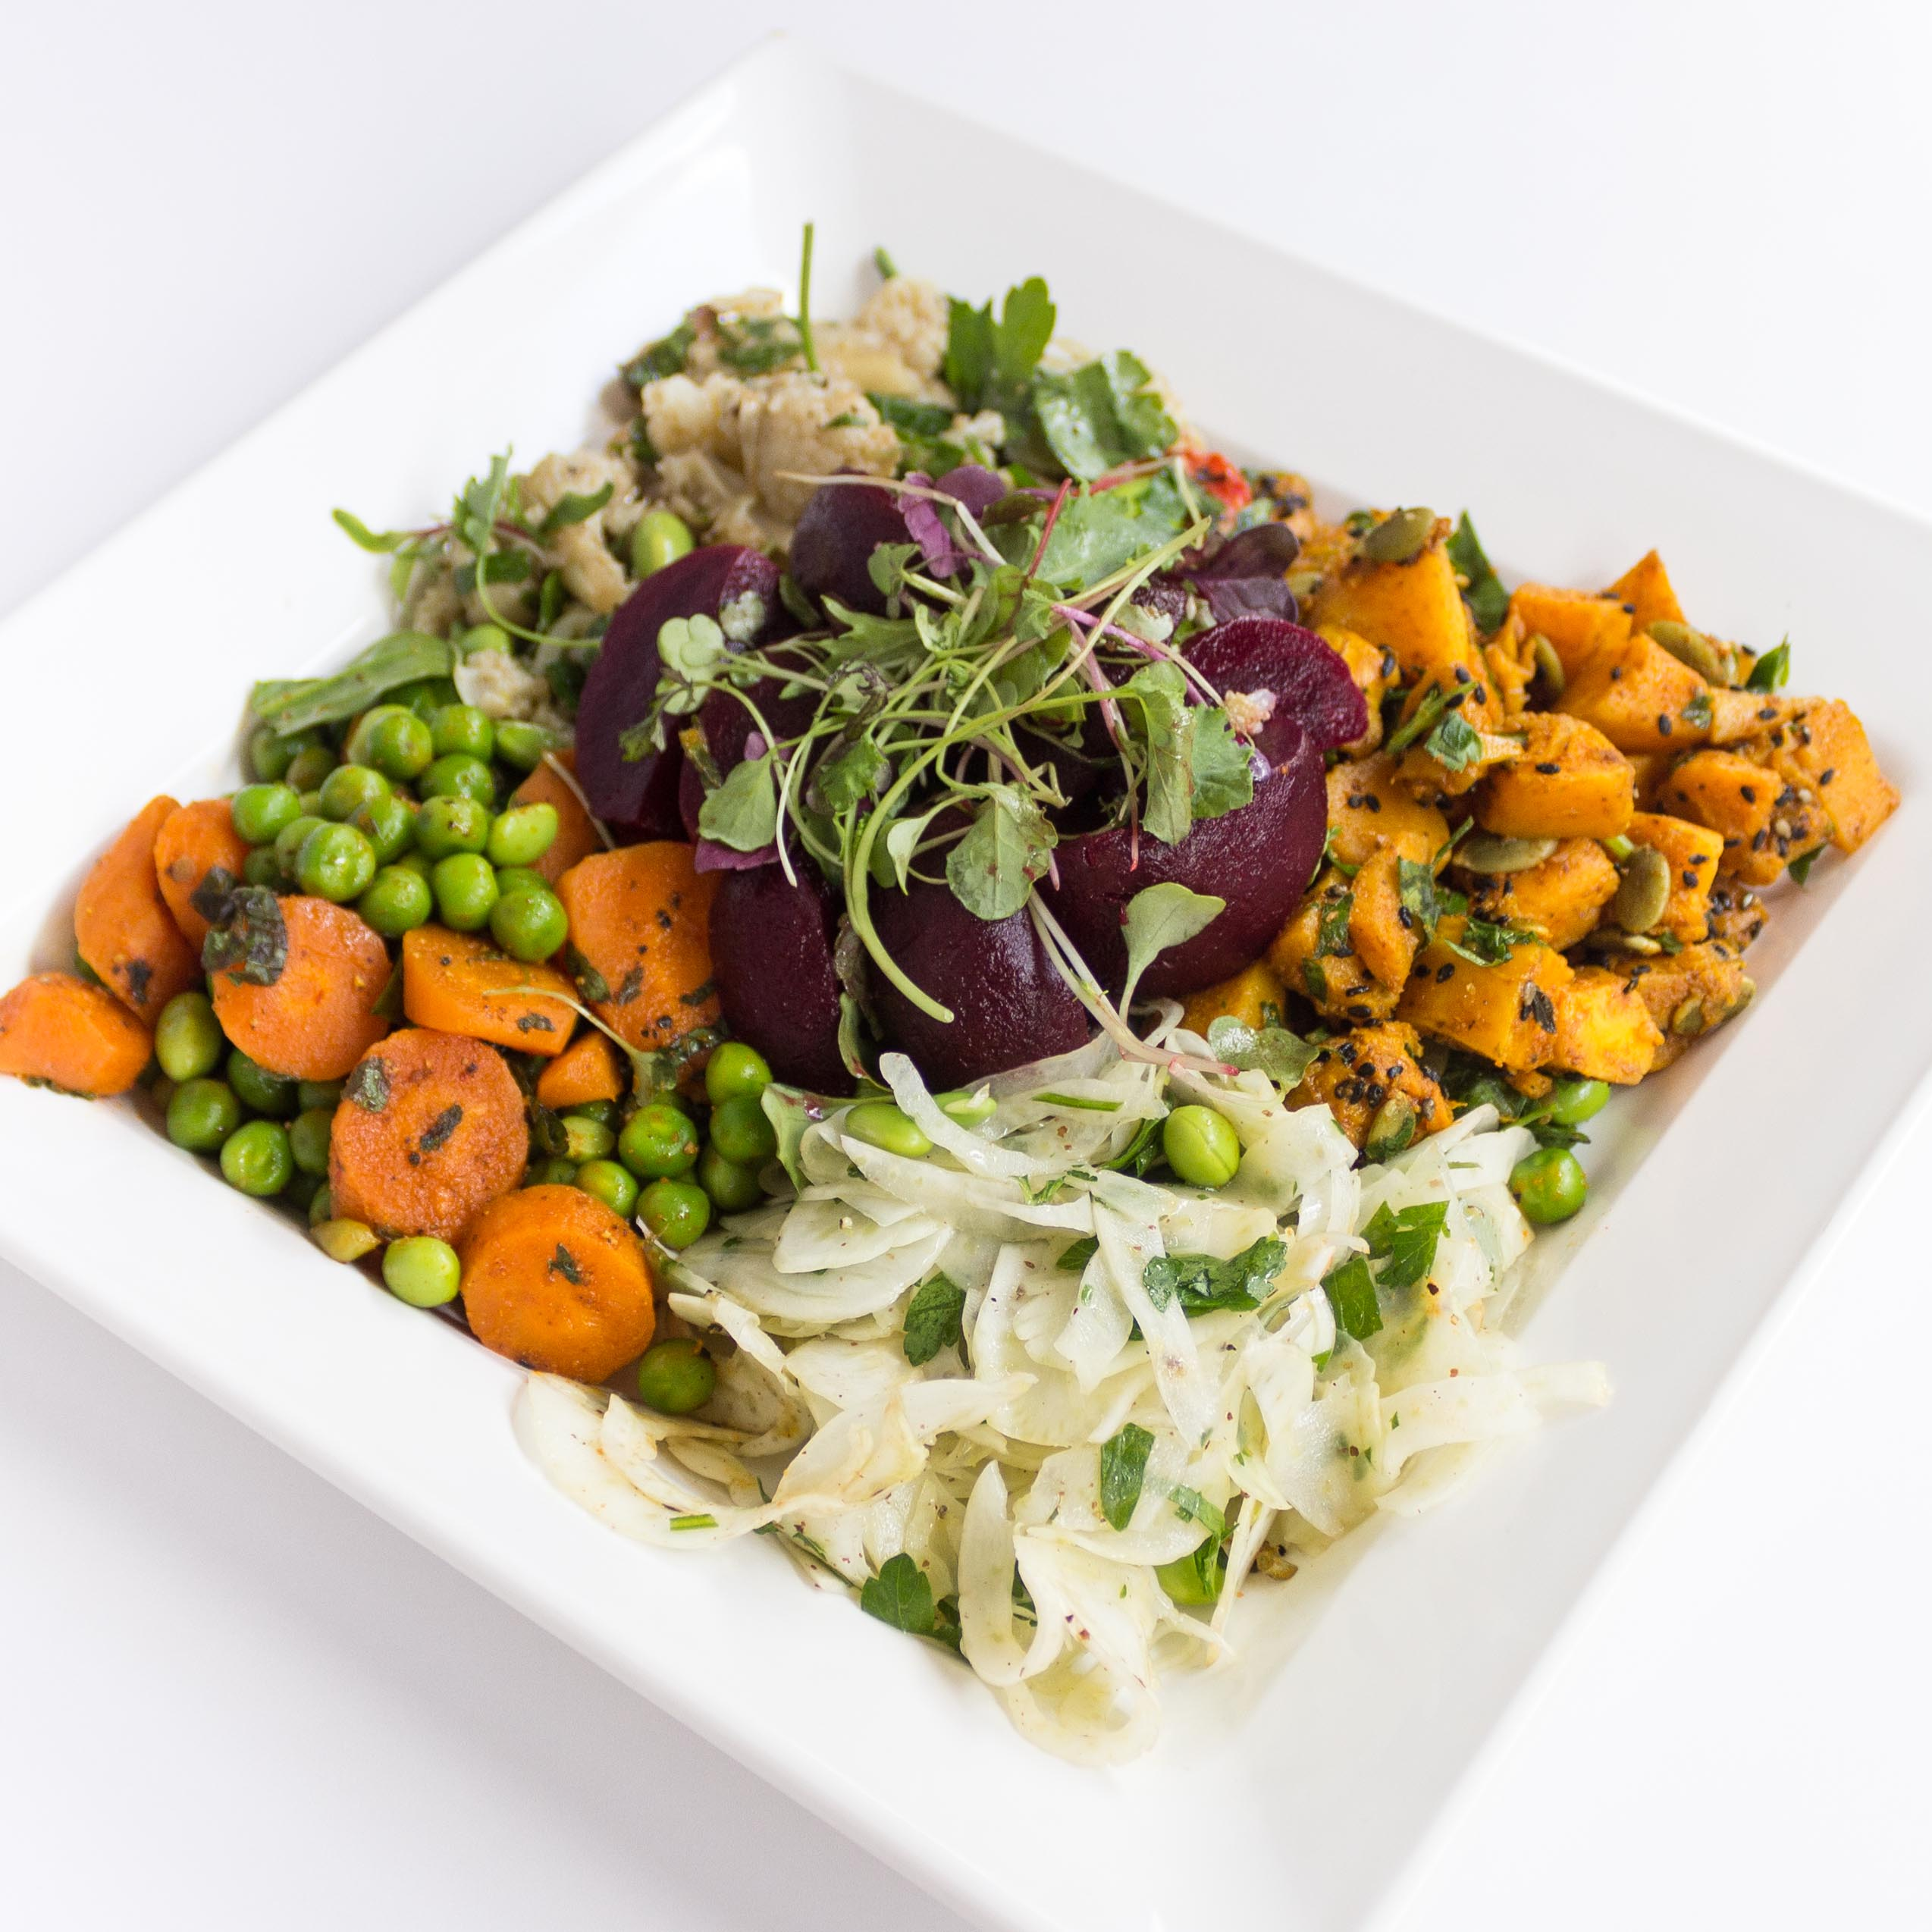 Nashi's salad packs: fresh, tasty and nutritious